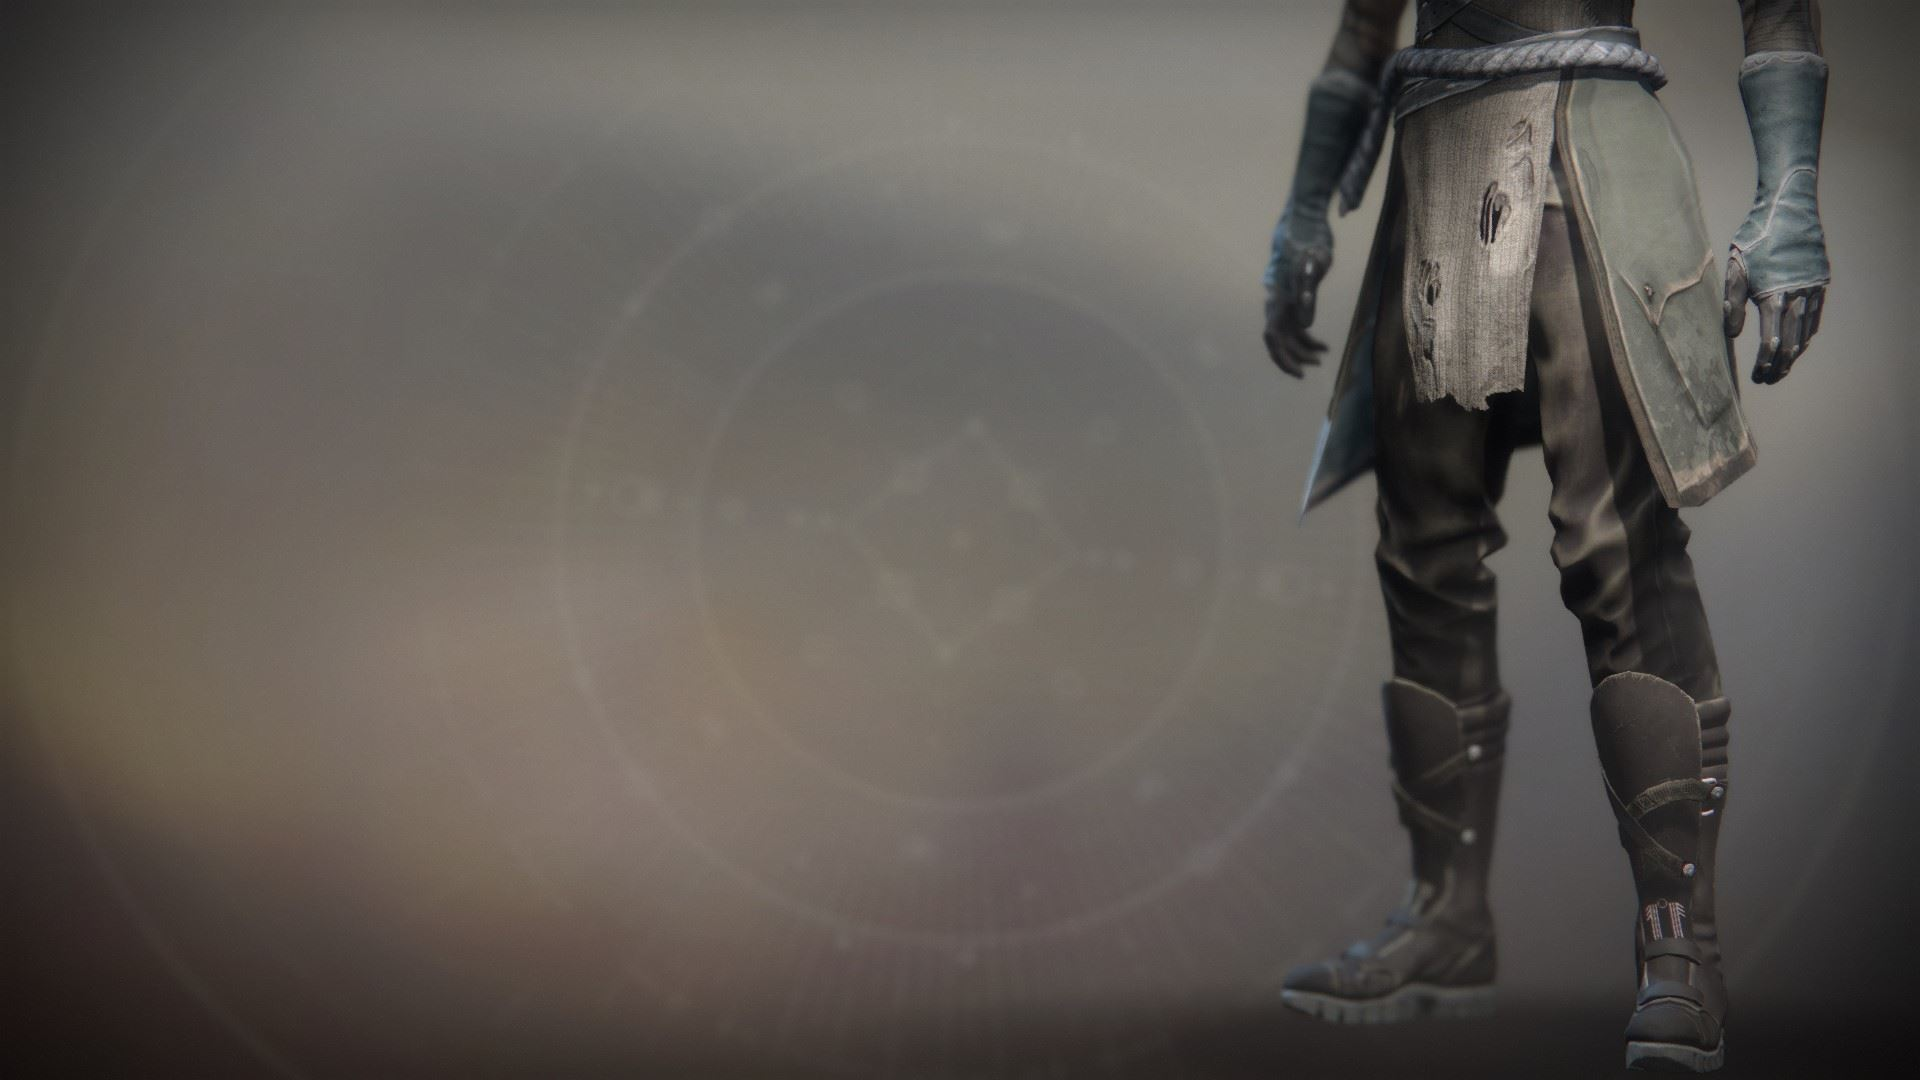 An in-game render of the Solstice Boots (Scorched).